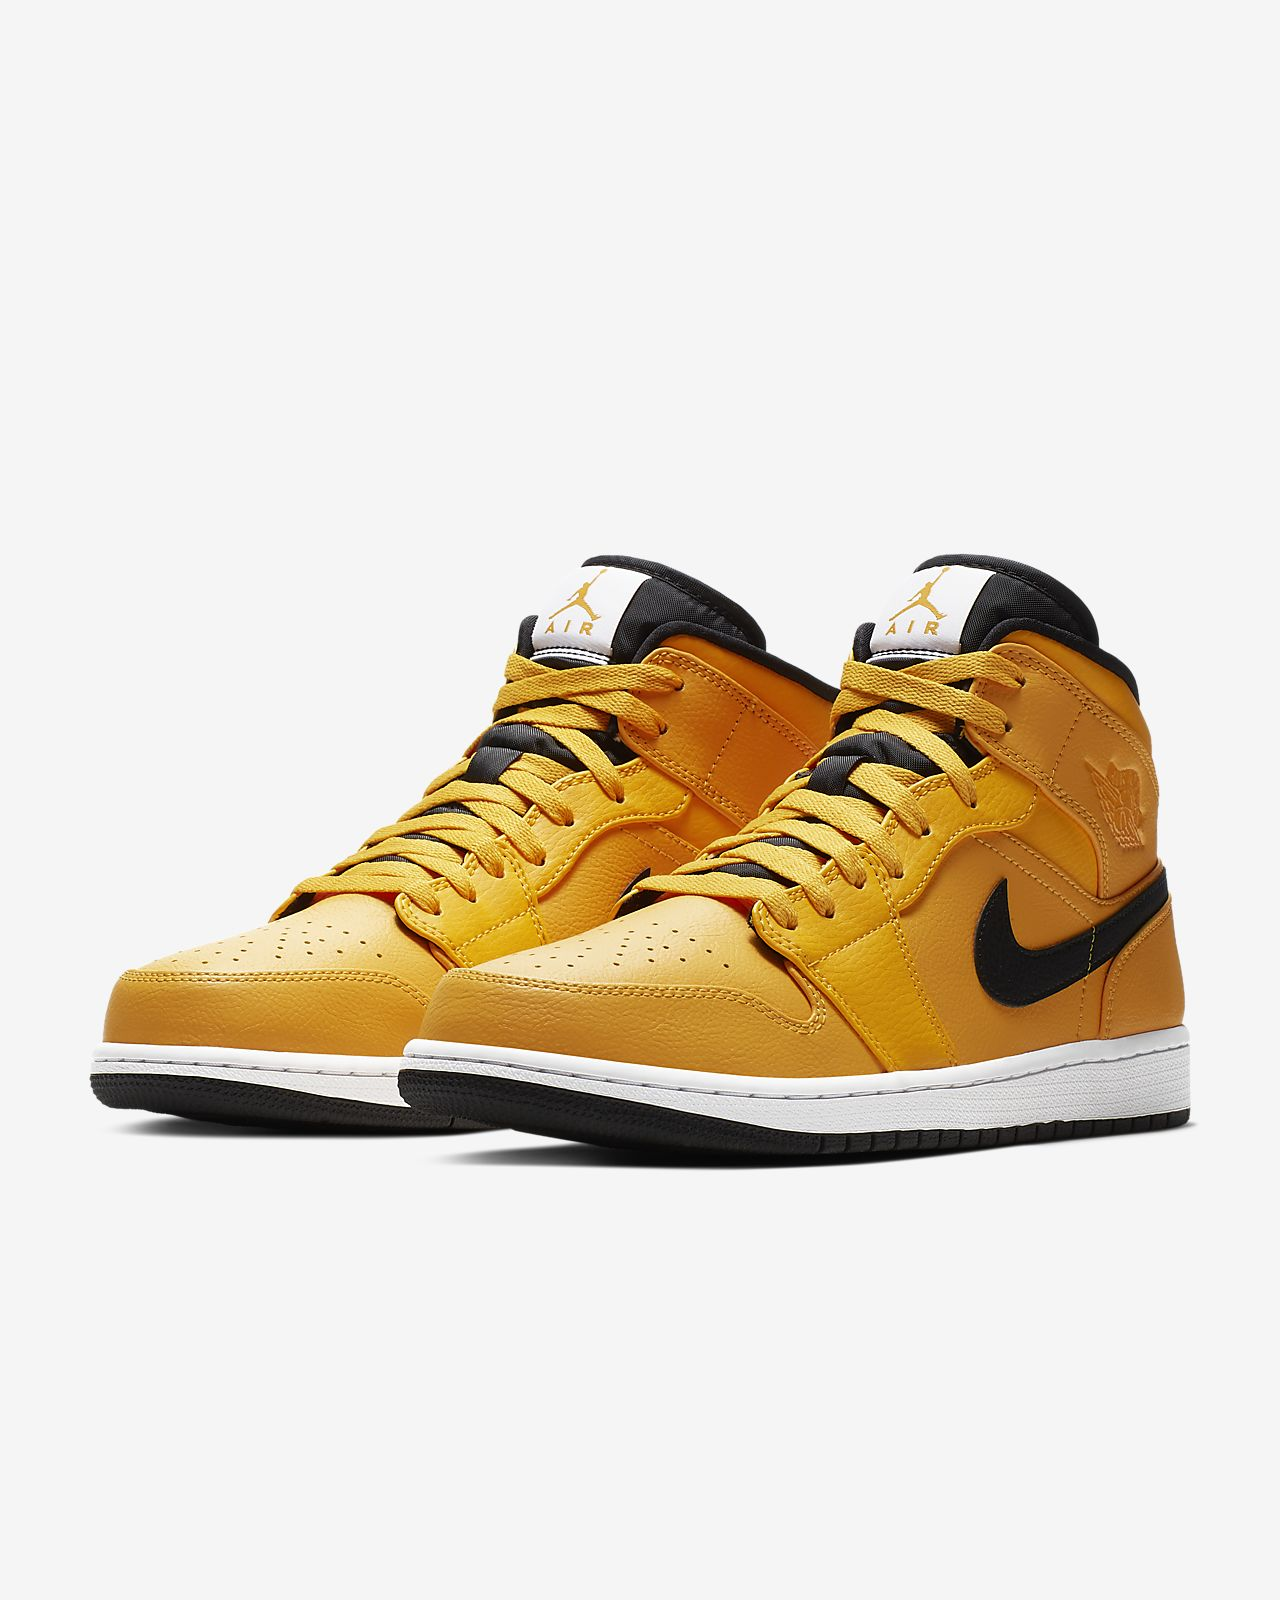 803d79125c12e7 Air Jordan 1 Mid Men s Shoe. Nike.com